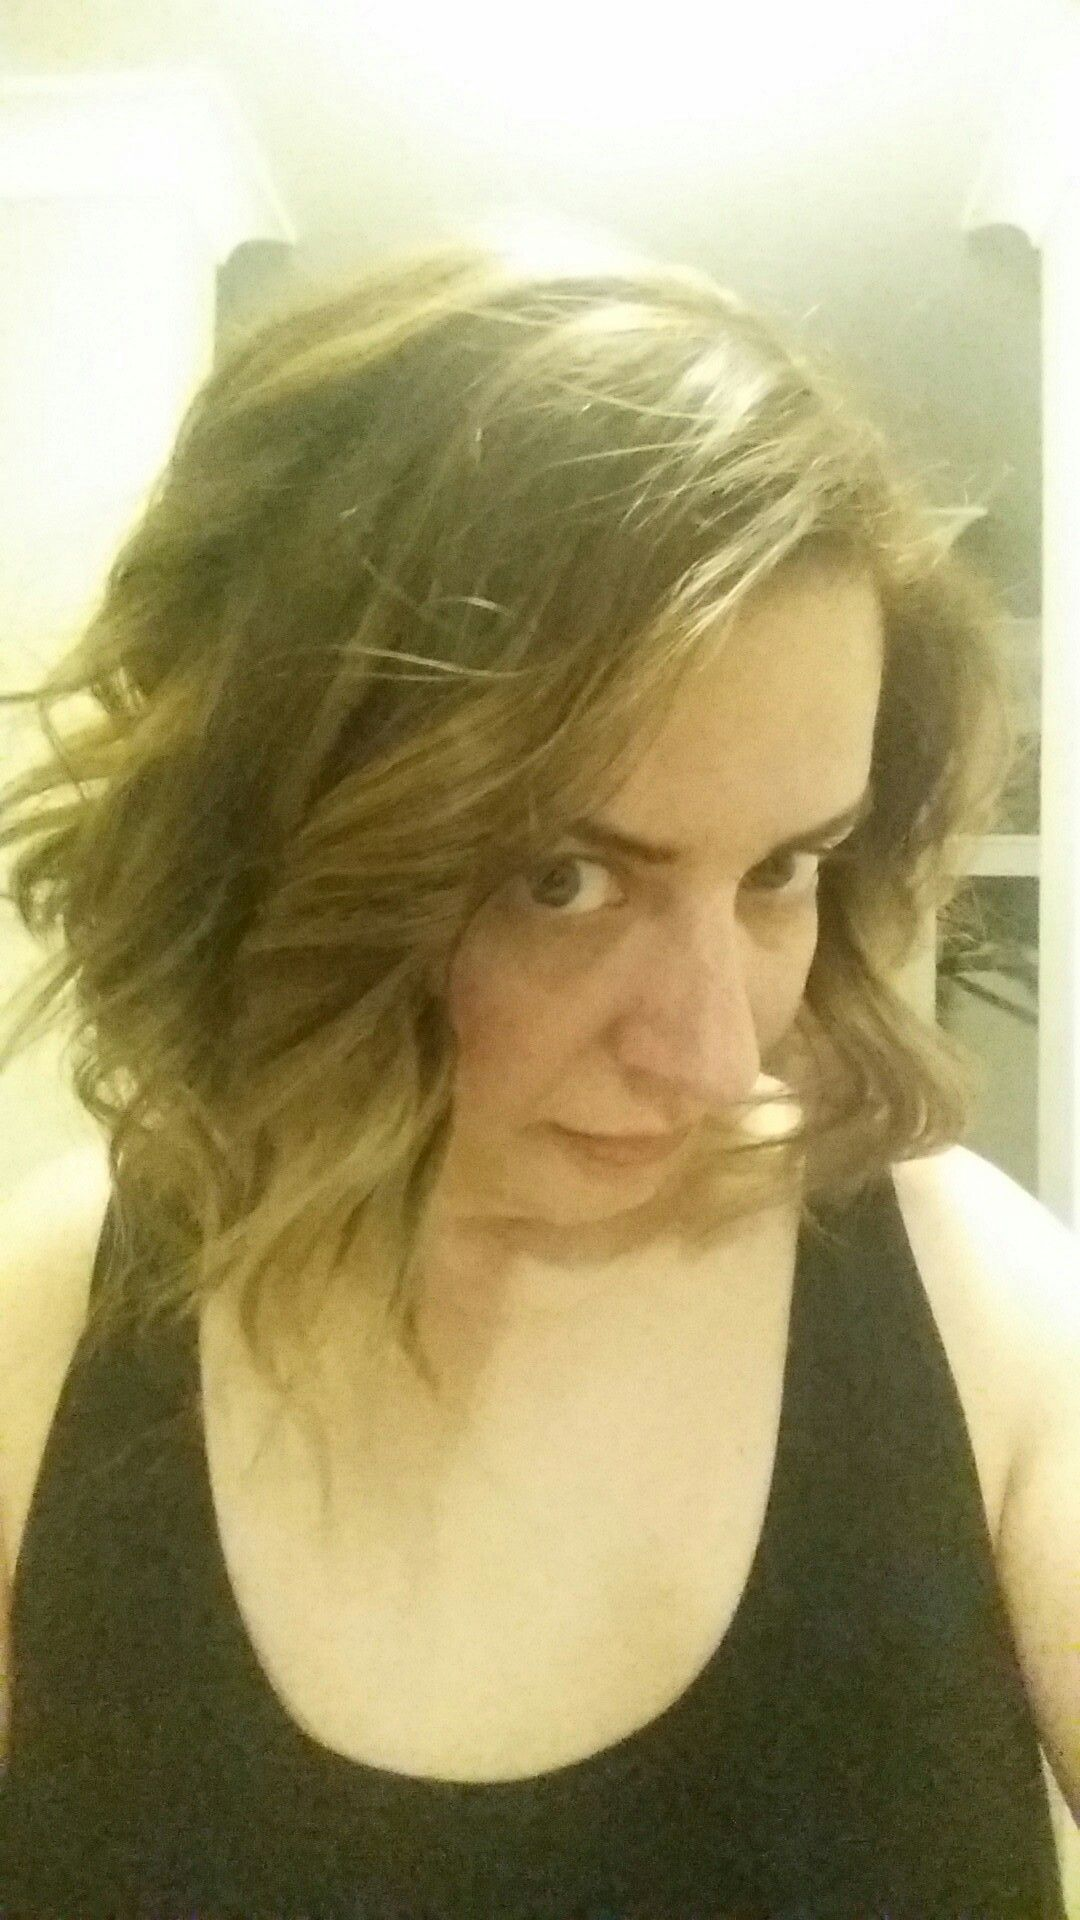 I needed to change my hair so I took the risk and went lighter. The crew at Onyx Hair in Mandurah gave me a cut and colour that I never thought I could pull off.